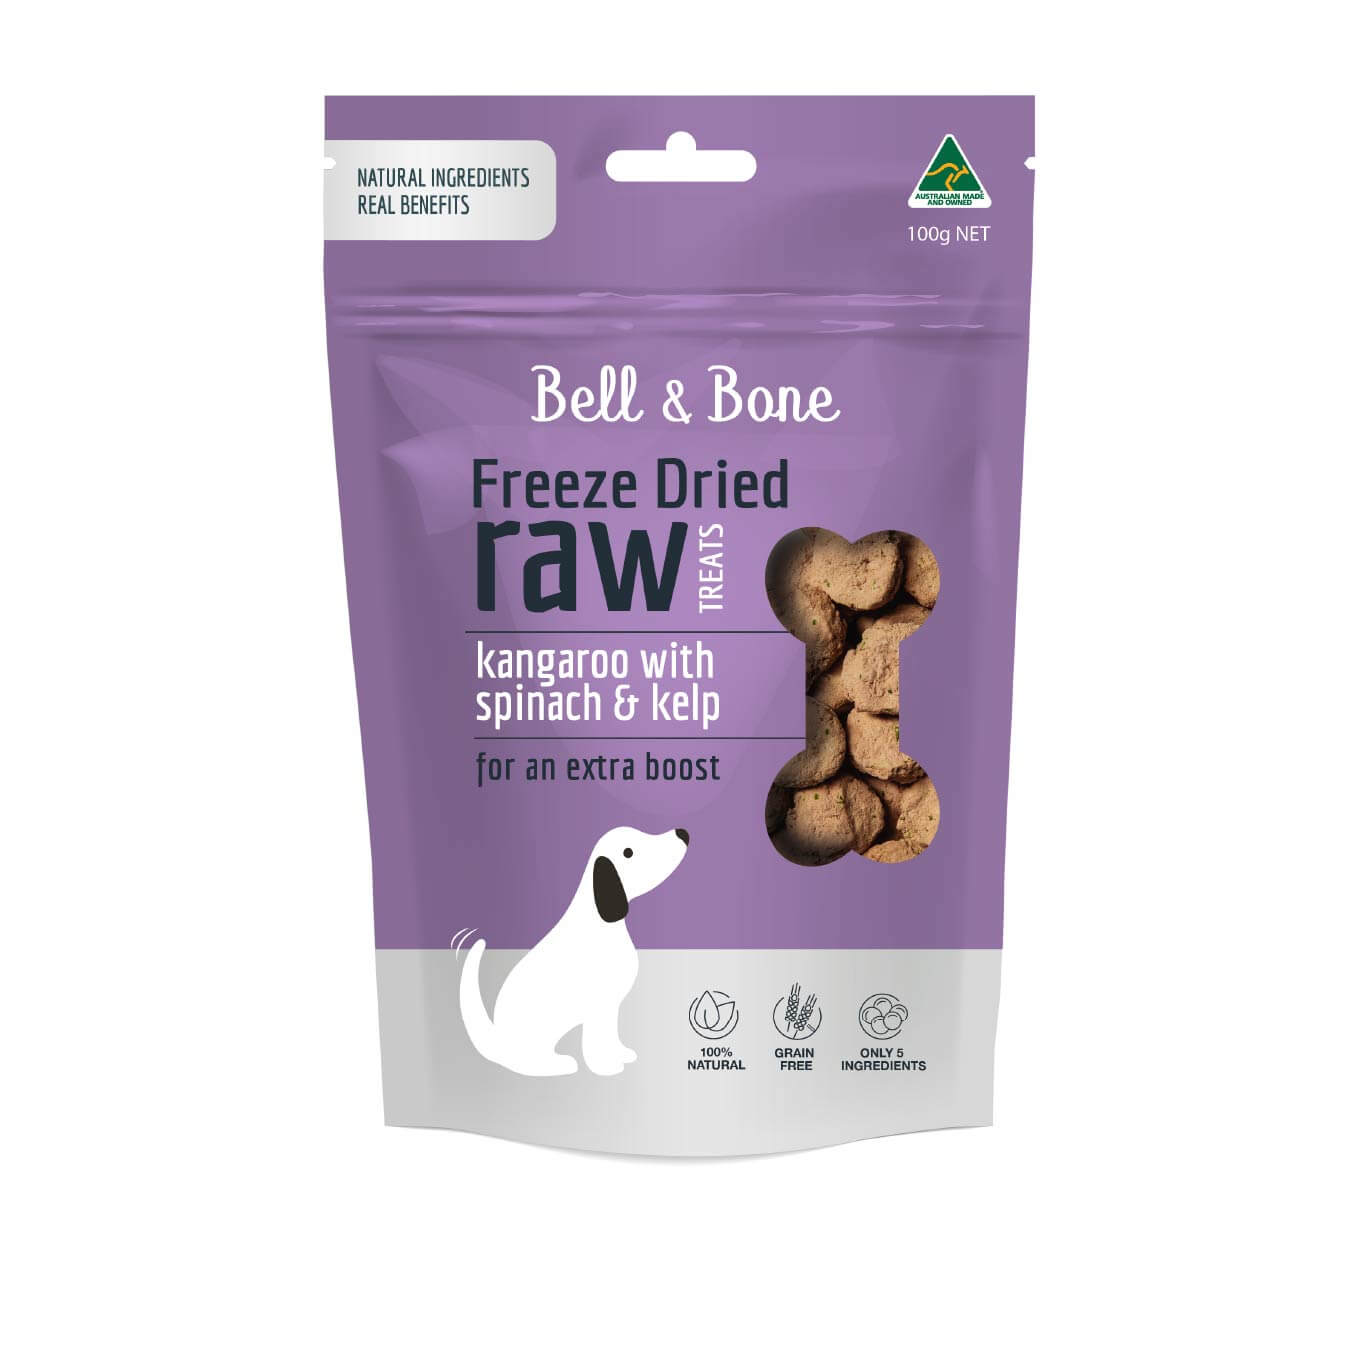 Bell & Bone Freeze Dried Dog Treats | Kangaroo, Spinach & Kelp (100g) - 20, Bell&Bone, Dogs, Starter Pack, Treats - Vanillapup - Online Pet Shop